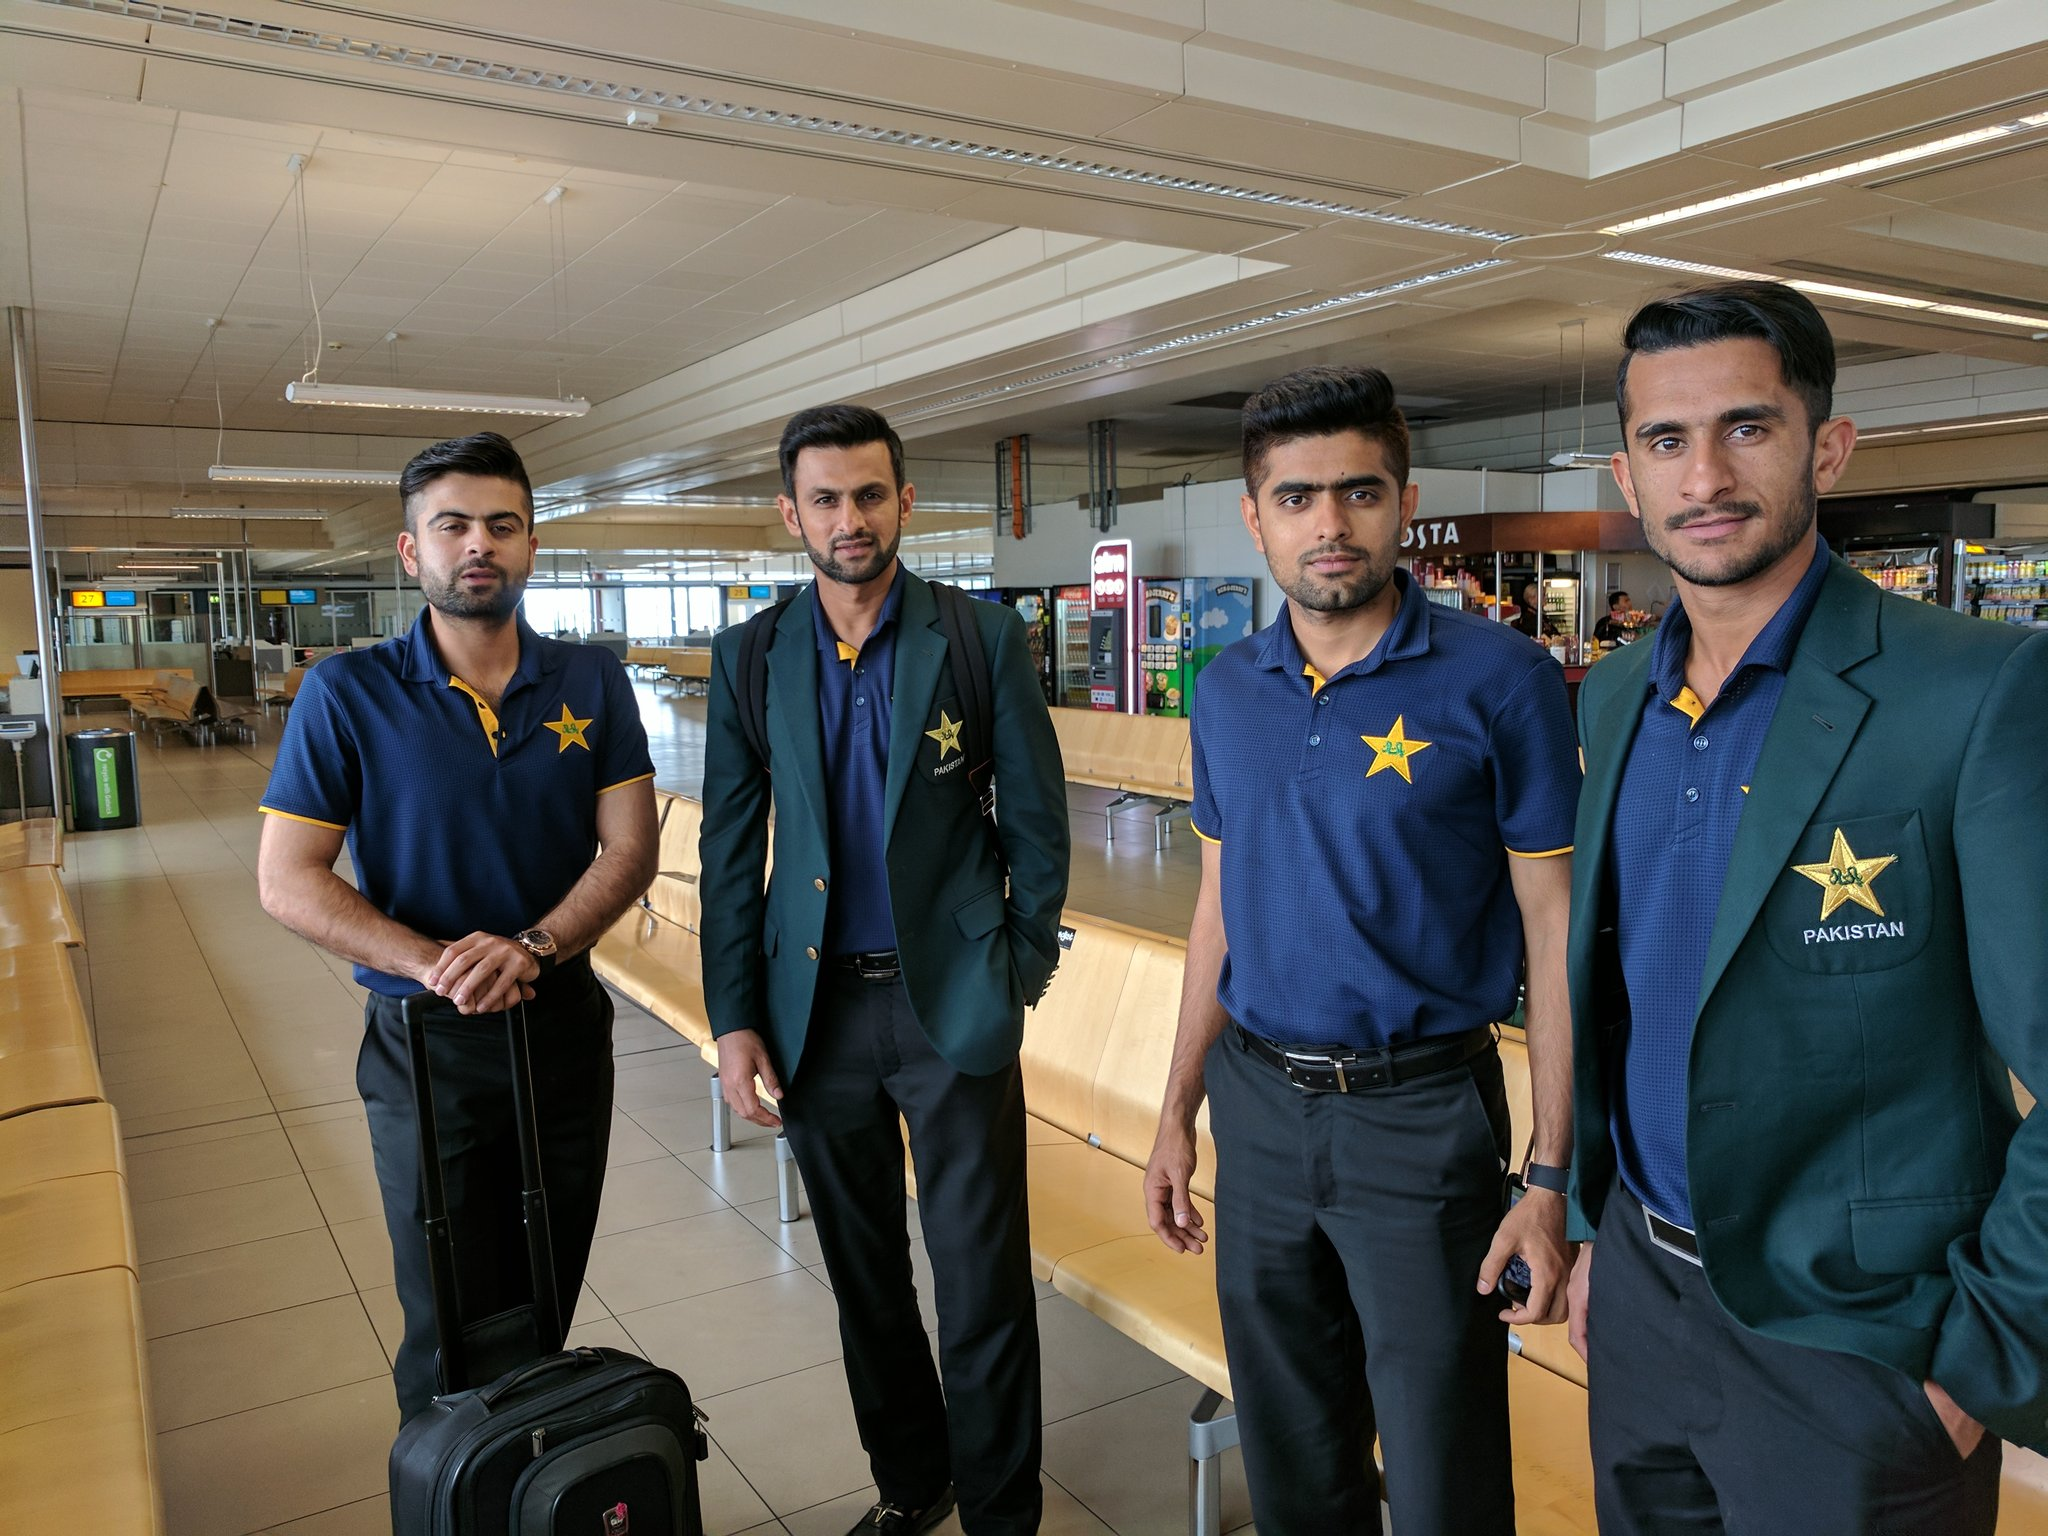 Pakistan Twenty20 squad departs for the tour of the West Indies